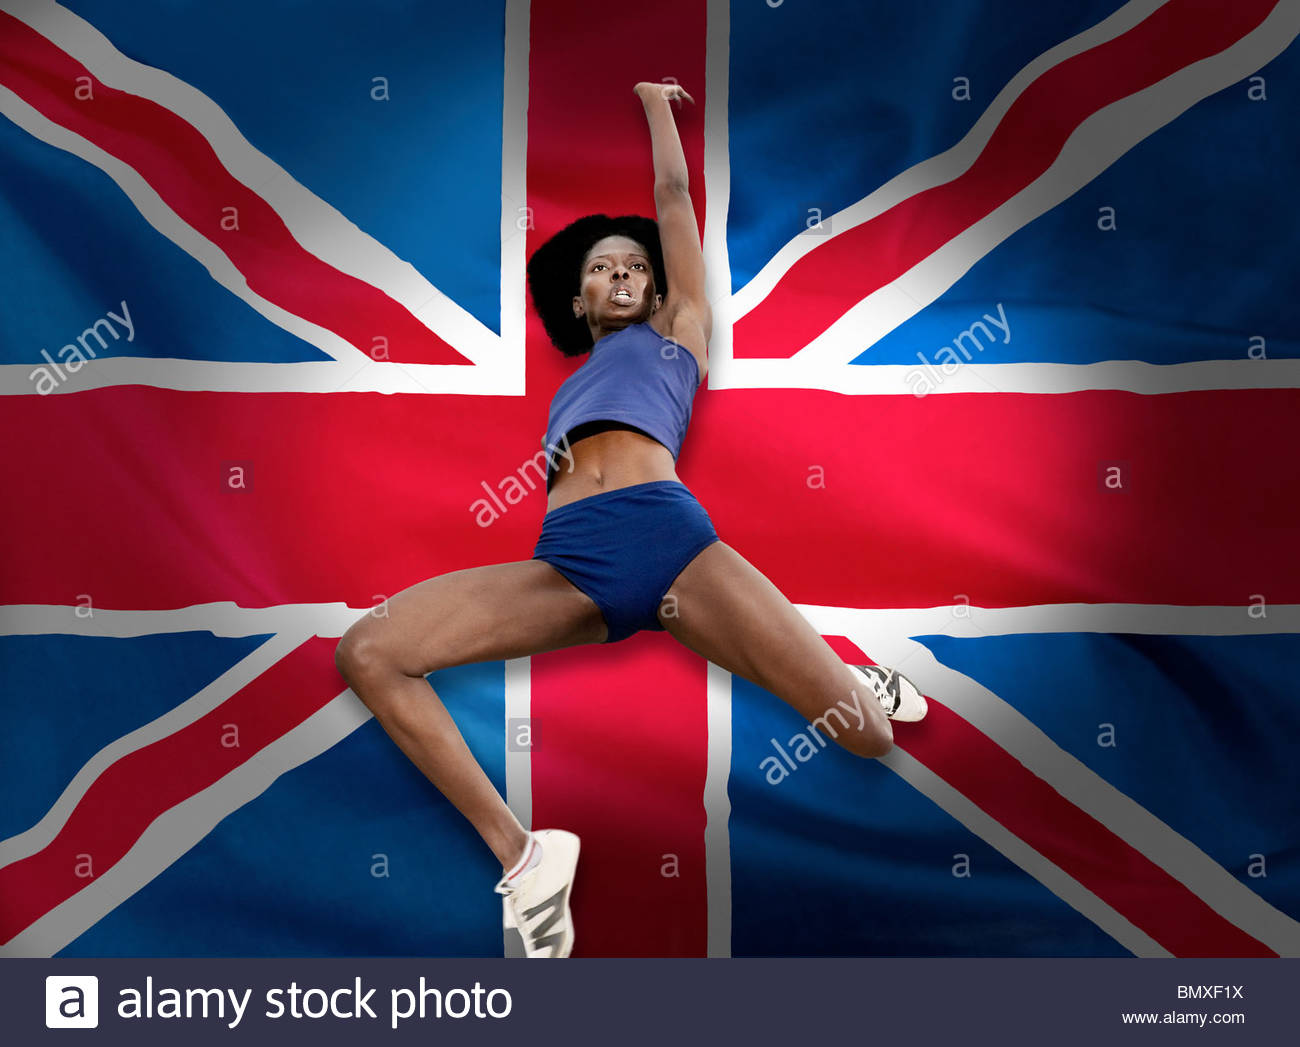 athlete jumping in front of british flag stock photo royalty free